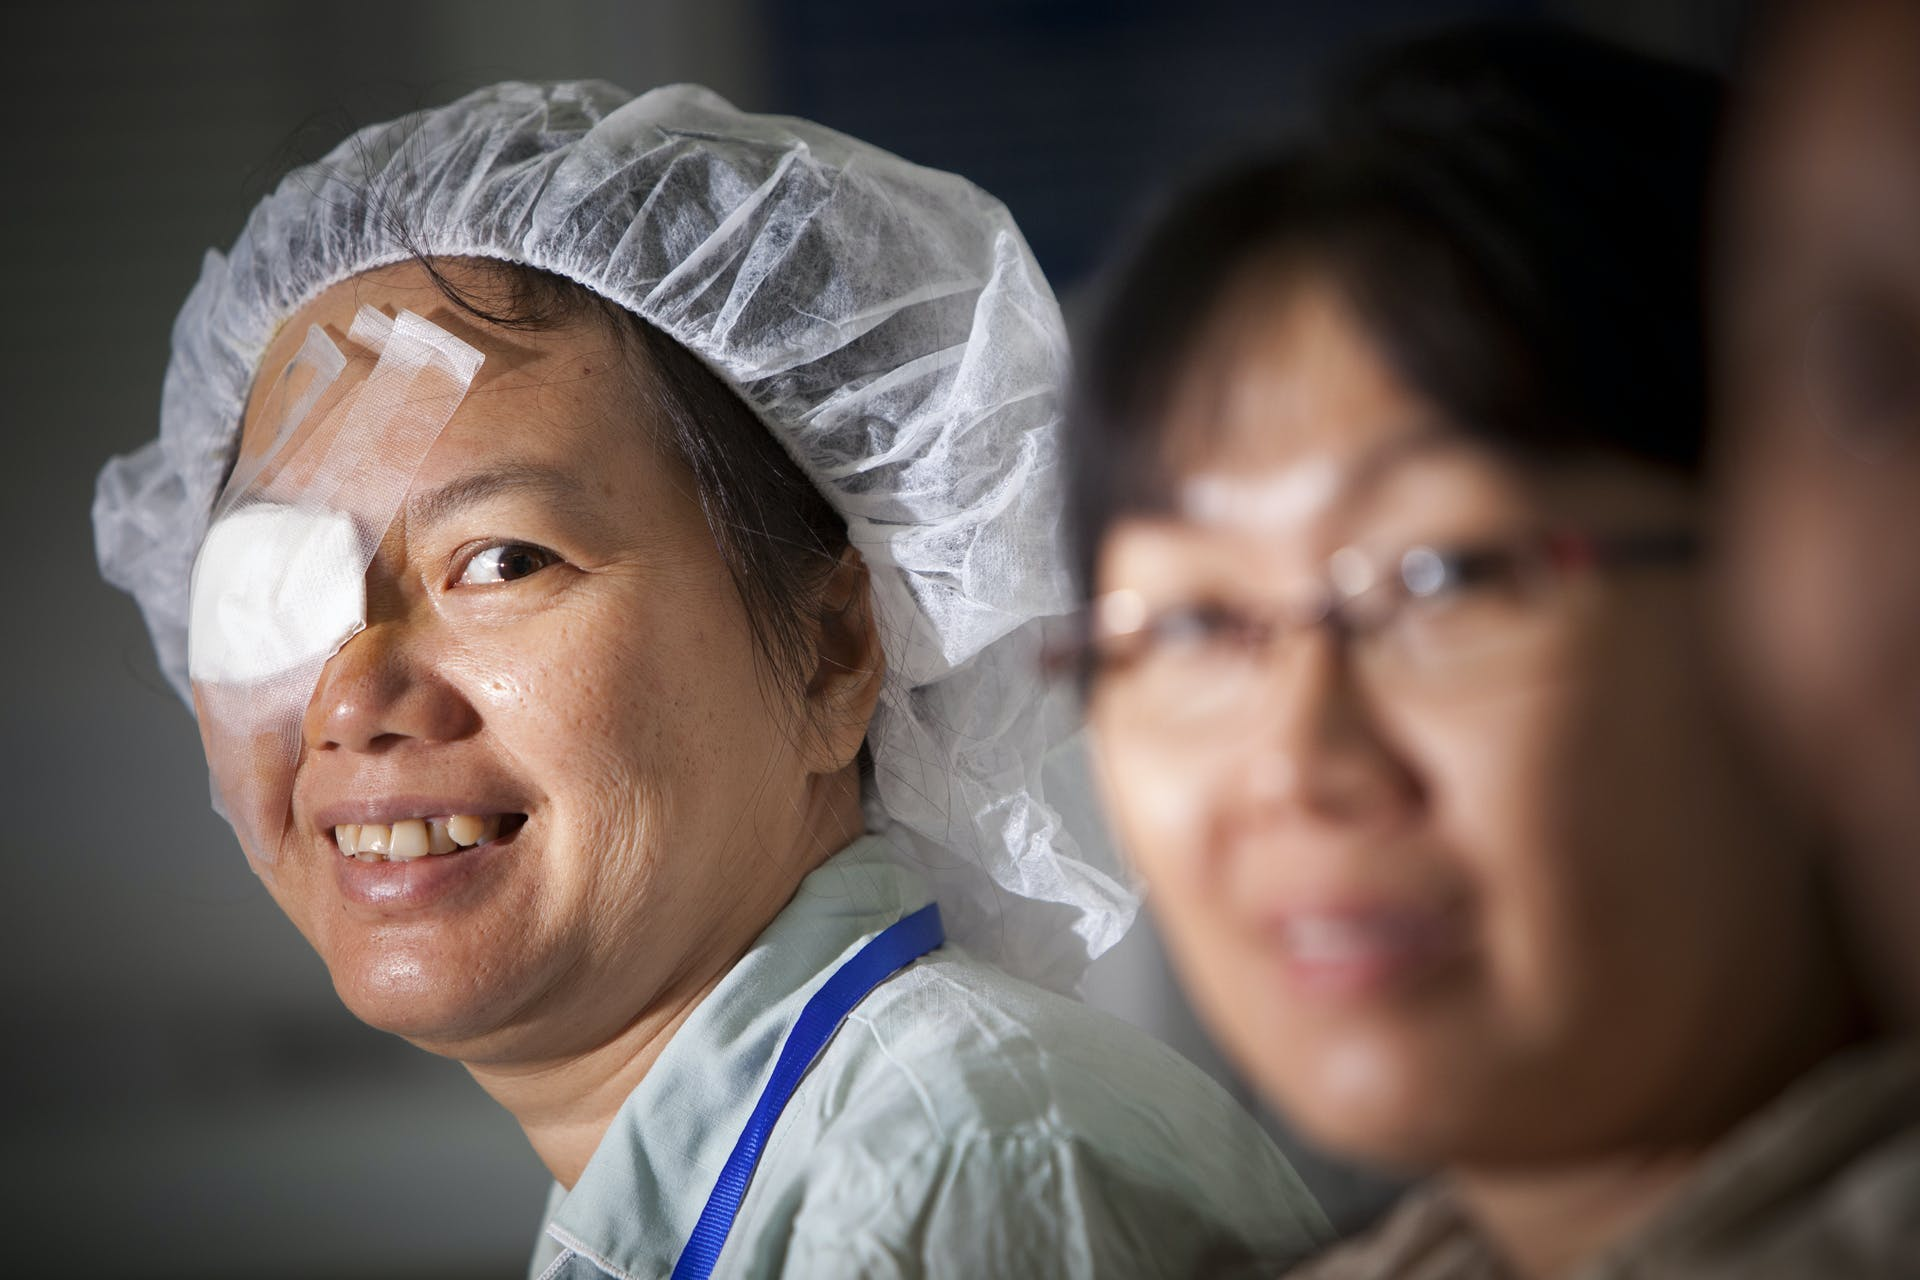 Vietnamese patient Huong Le Thi Thanh post retinal surgery